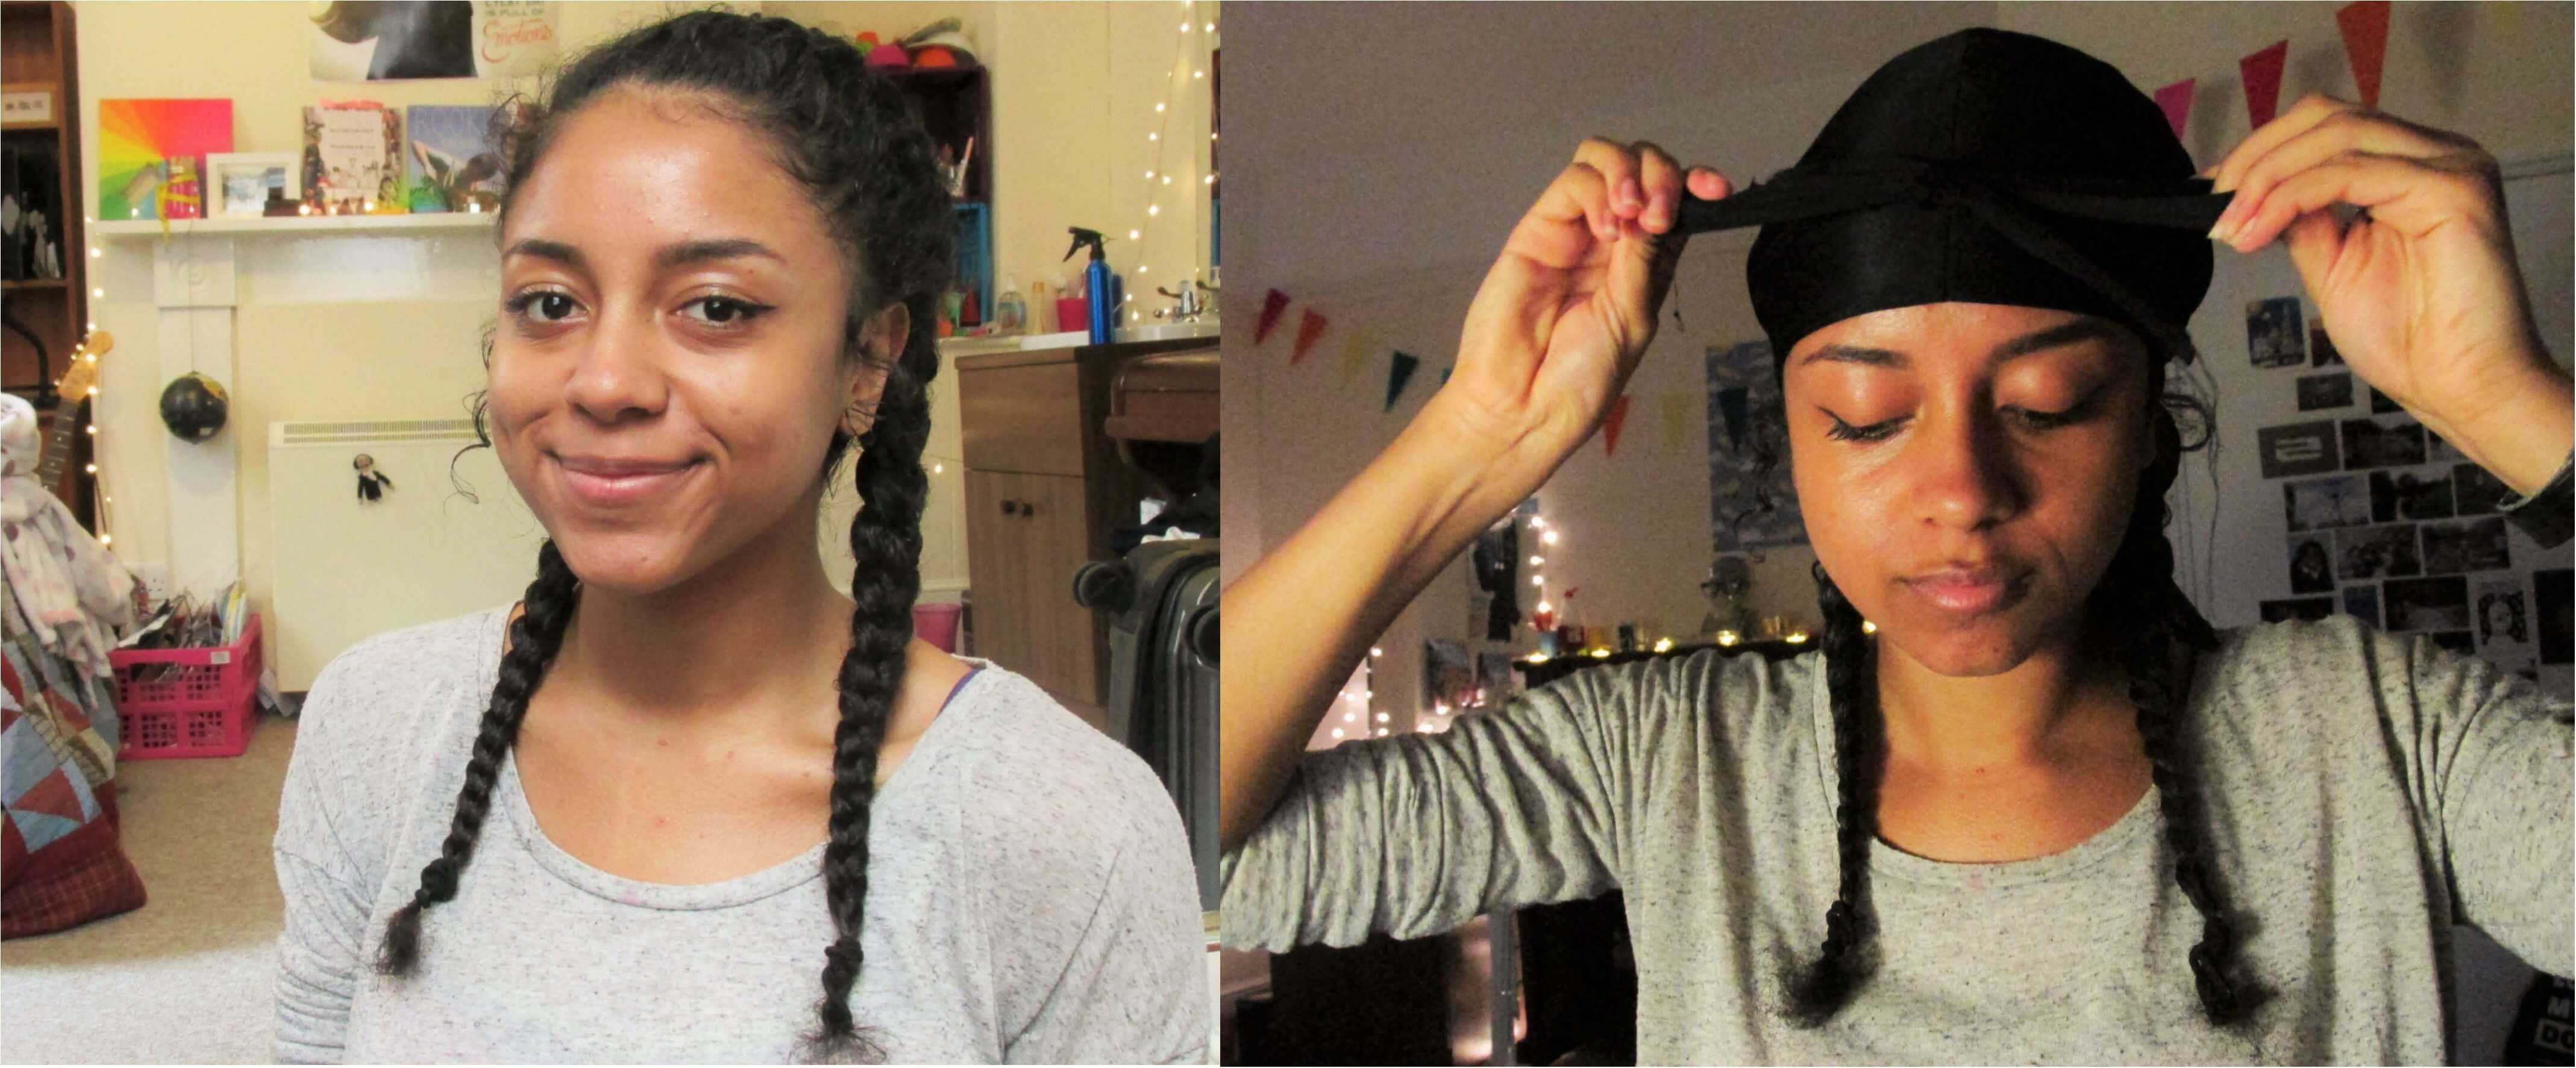 Braidout step 4 - wait to dry and durag